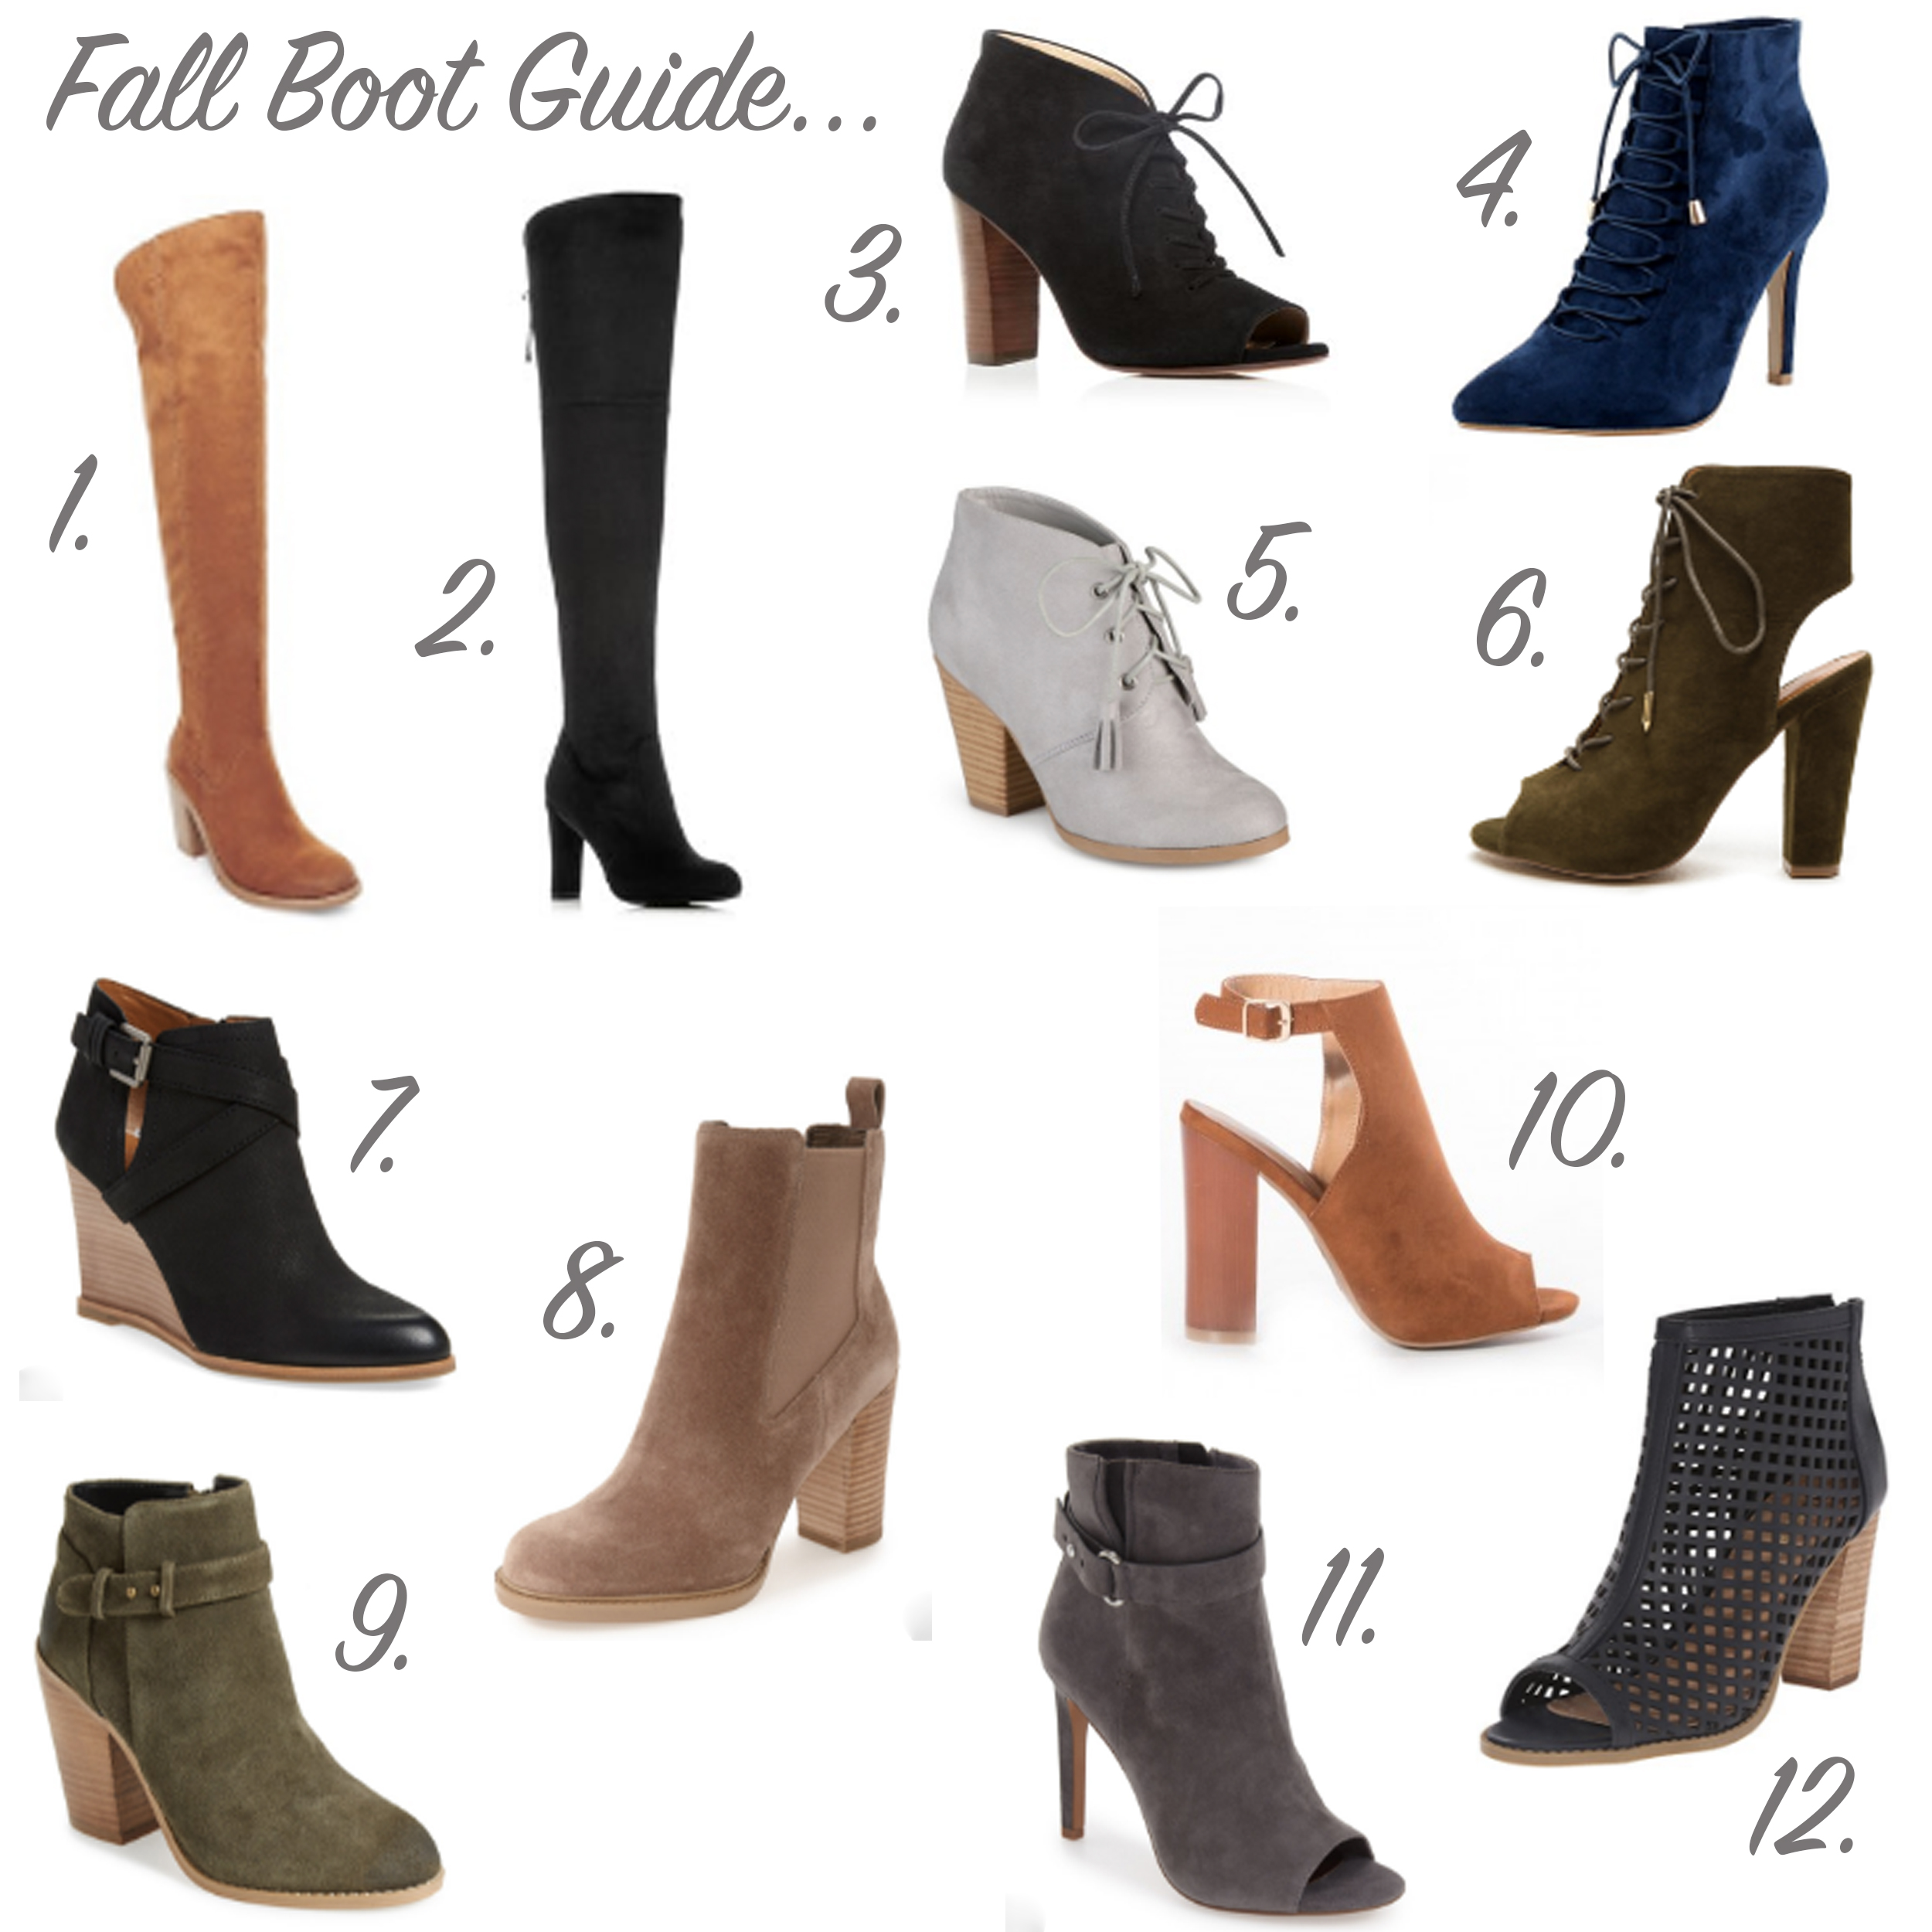 missyonmadison, melissa tierney, fall style, fall boot guide, fall boots, fall trends, fall shoes, fall boot trends, nordstrom, shoes, affordable boots, la blogger, blogged, la style, blogger style, fall footwear, go jane, shoetopia, nordstrom shoe guide, boots under 200, fall 2016 style, fall 2016 boot guide, lace up booties, ankle boots, otk boots, over the knee boots, suede boots, peep toe booties,